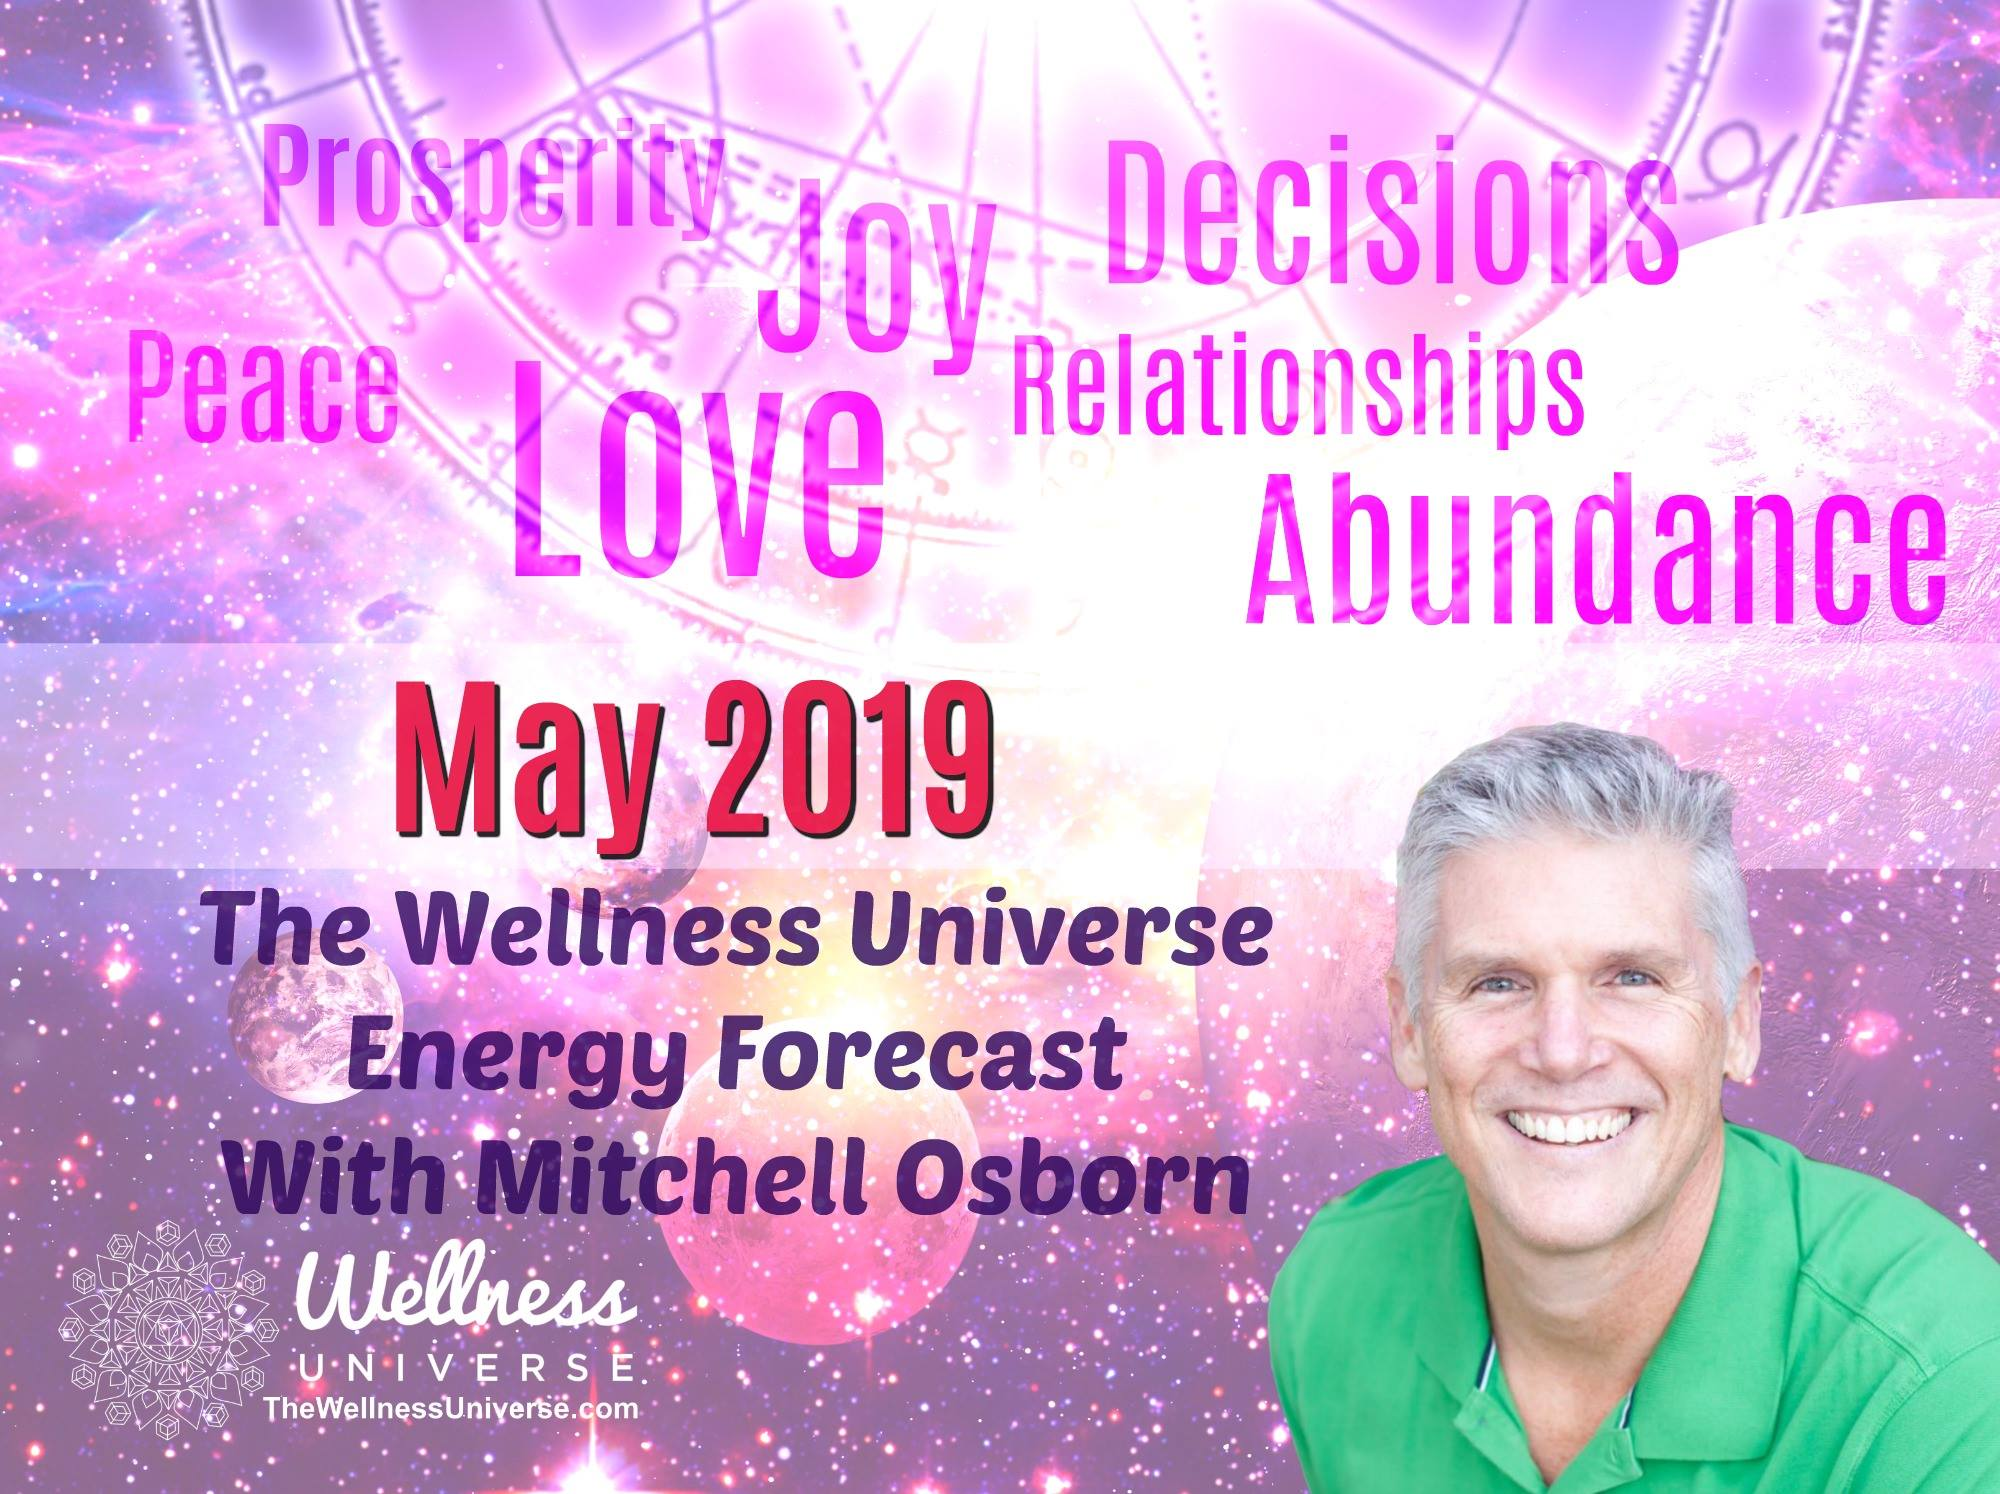 Energy Forecast for May 2019 with Mitchell Osborn #TheWellnessUniverse #WUVIP #ForecastForMay2019 #Energy #Forecast